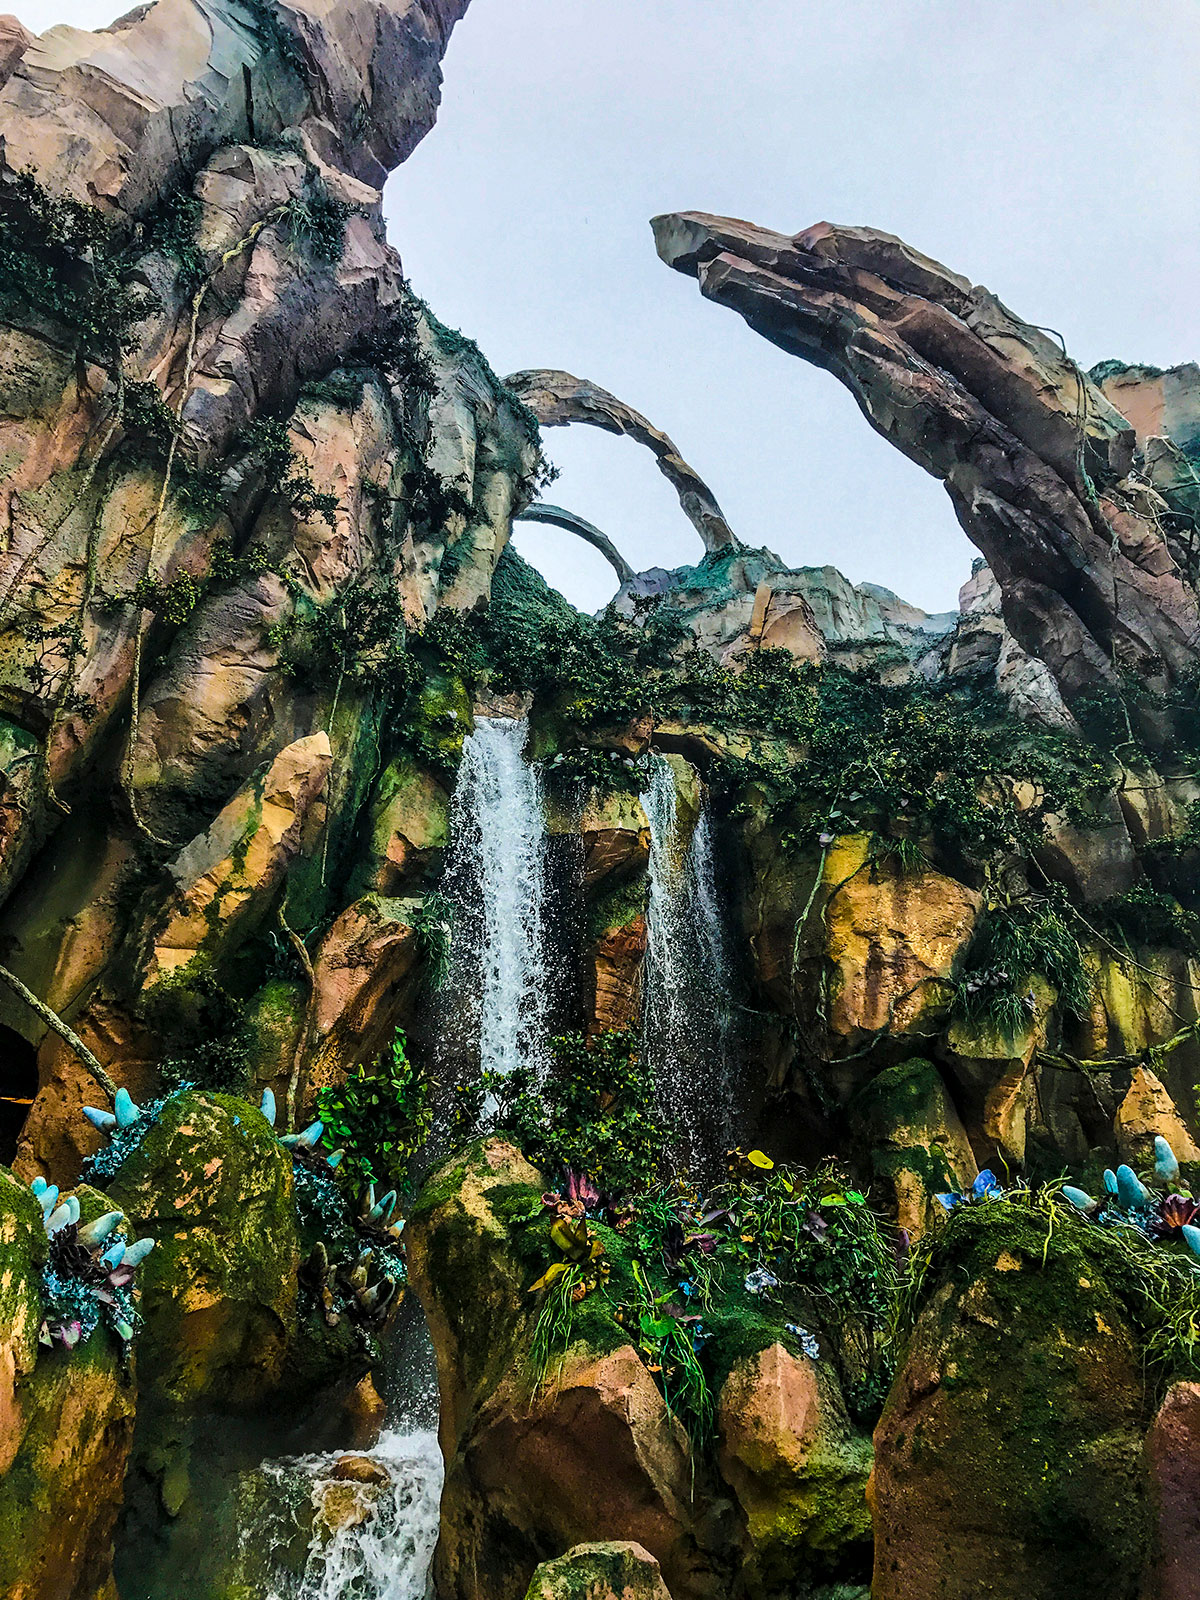 Pandora-World-of-Avatar